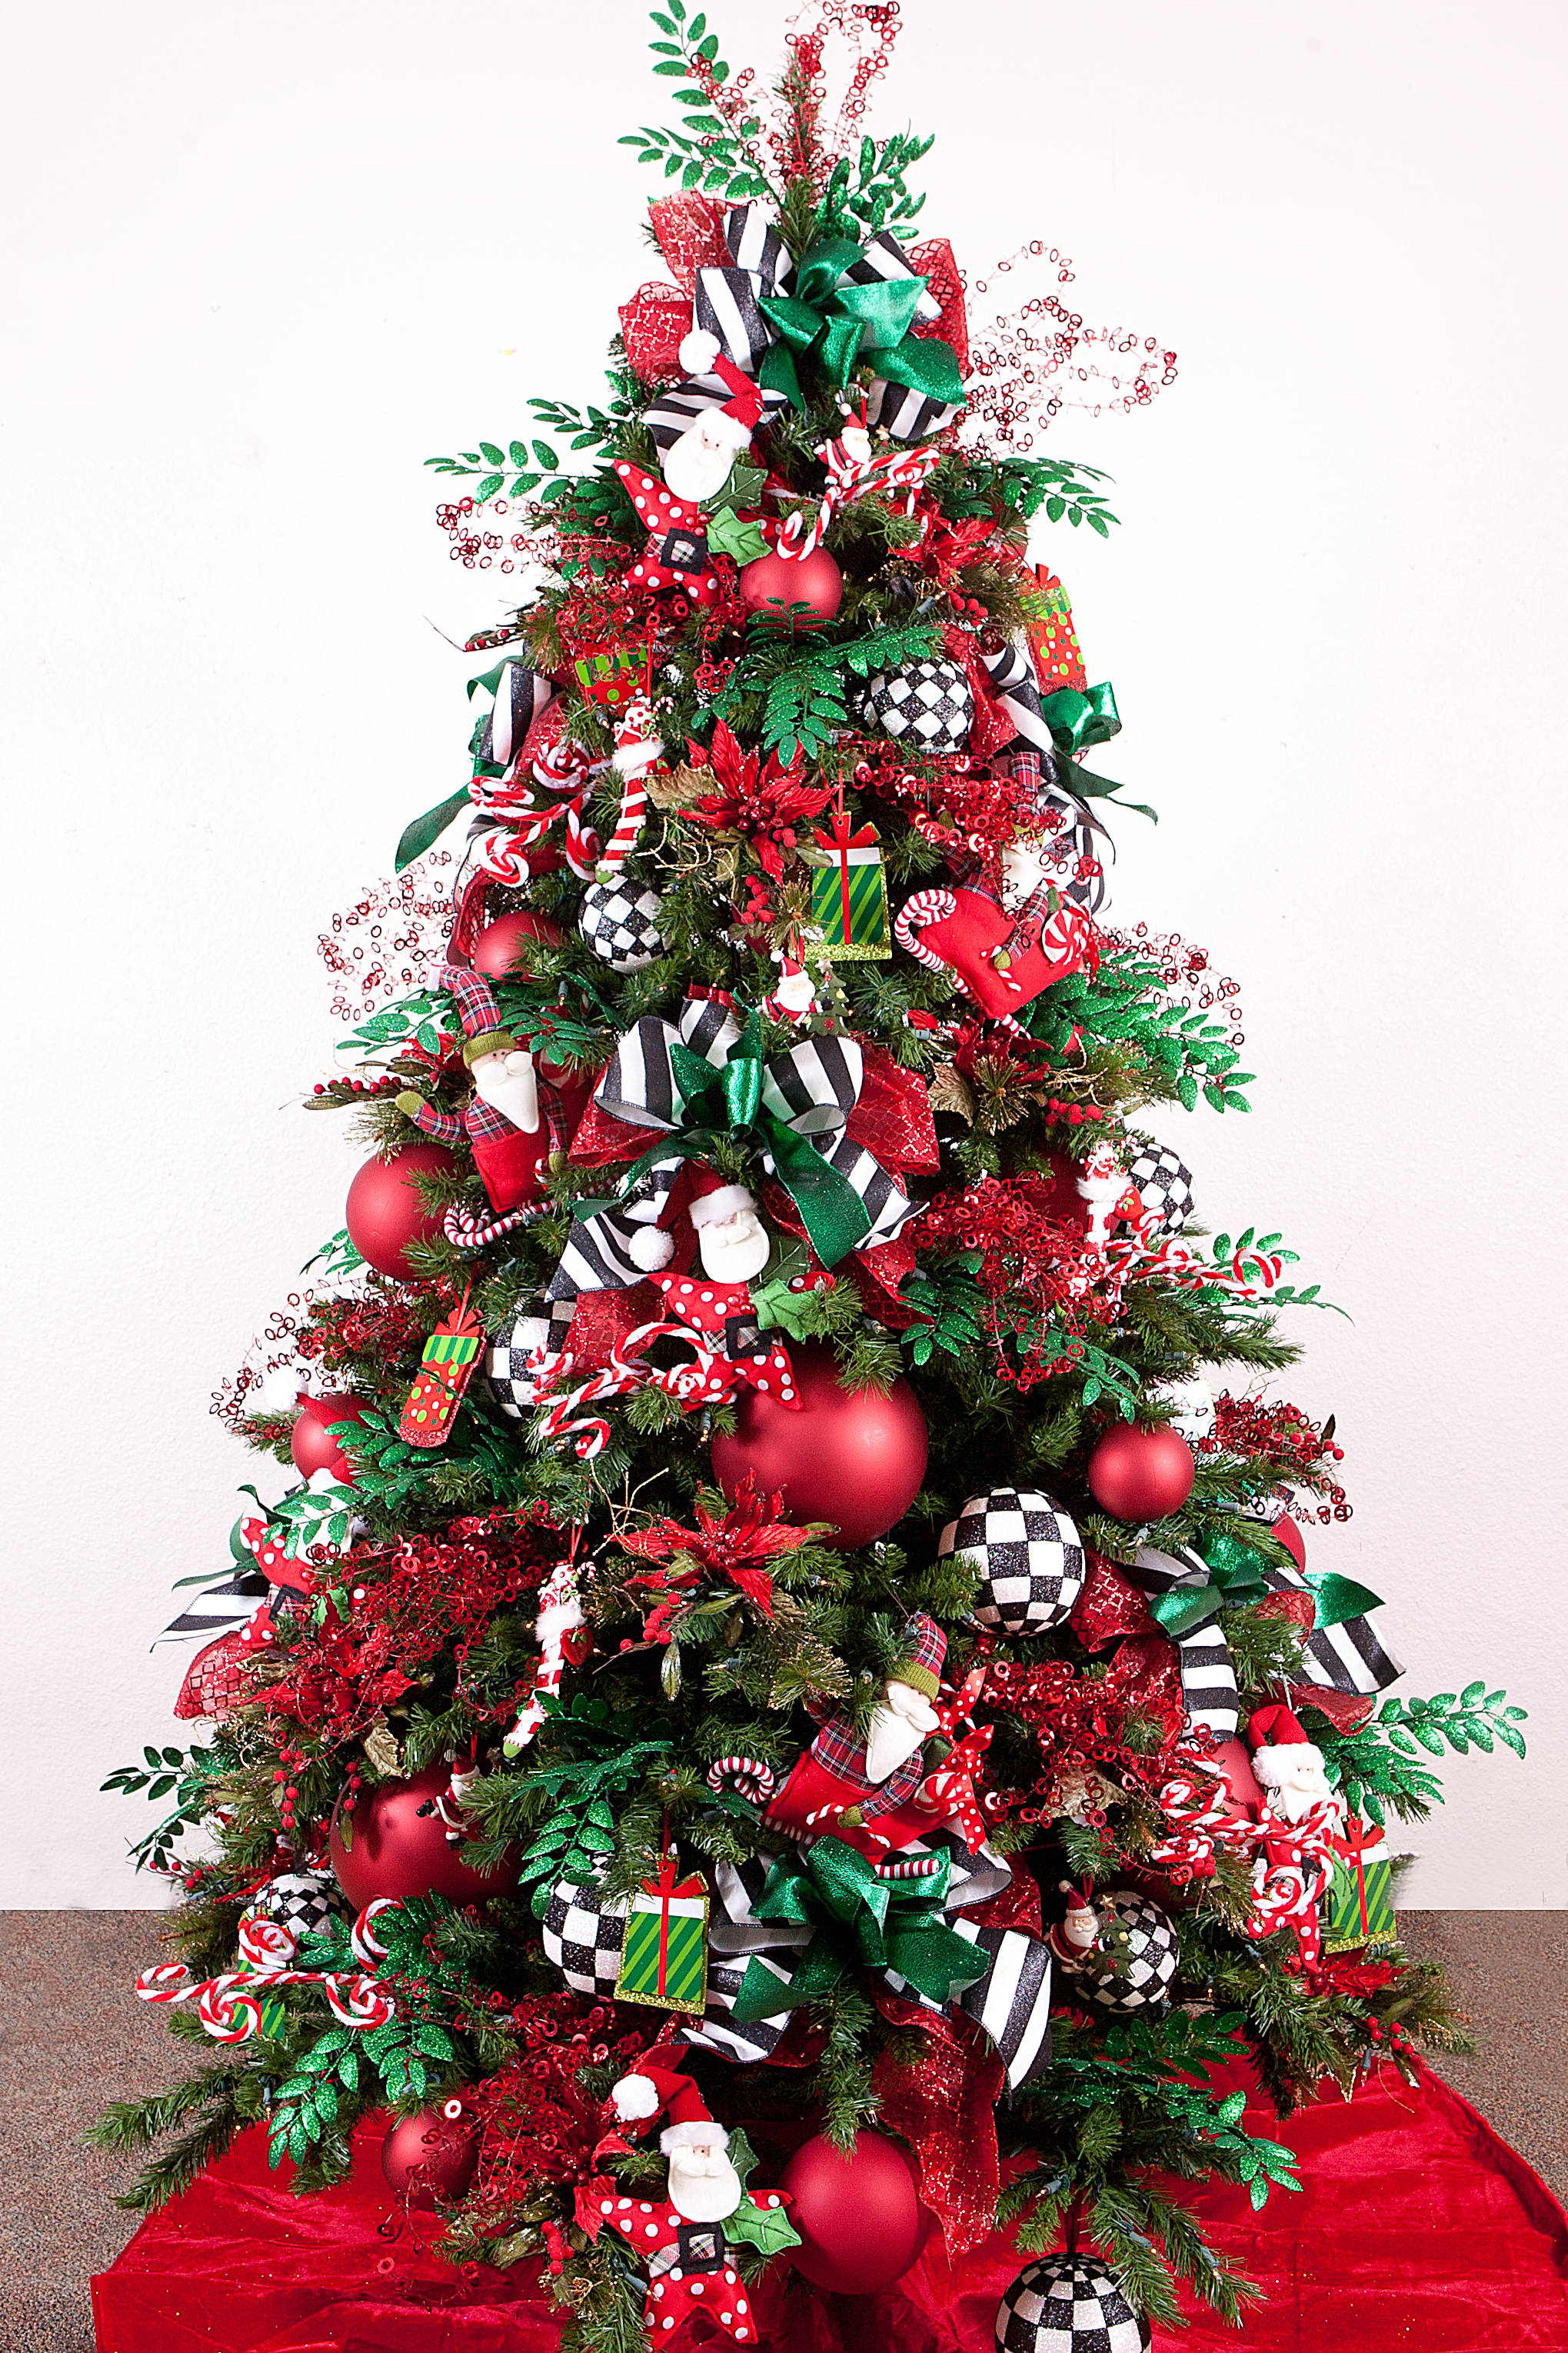 Xmas tree decorations - Showmedecorating Create Inspire Educate Decorate